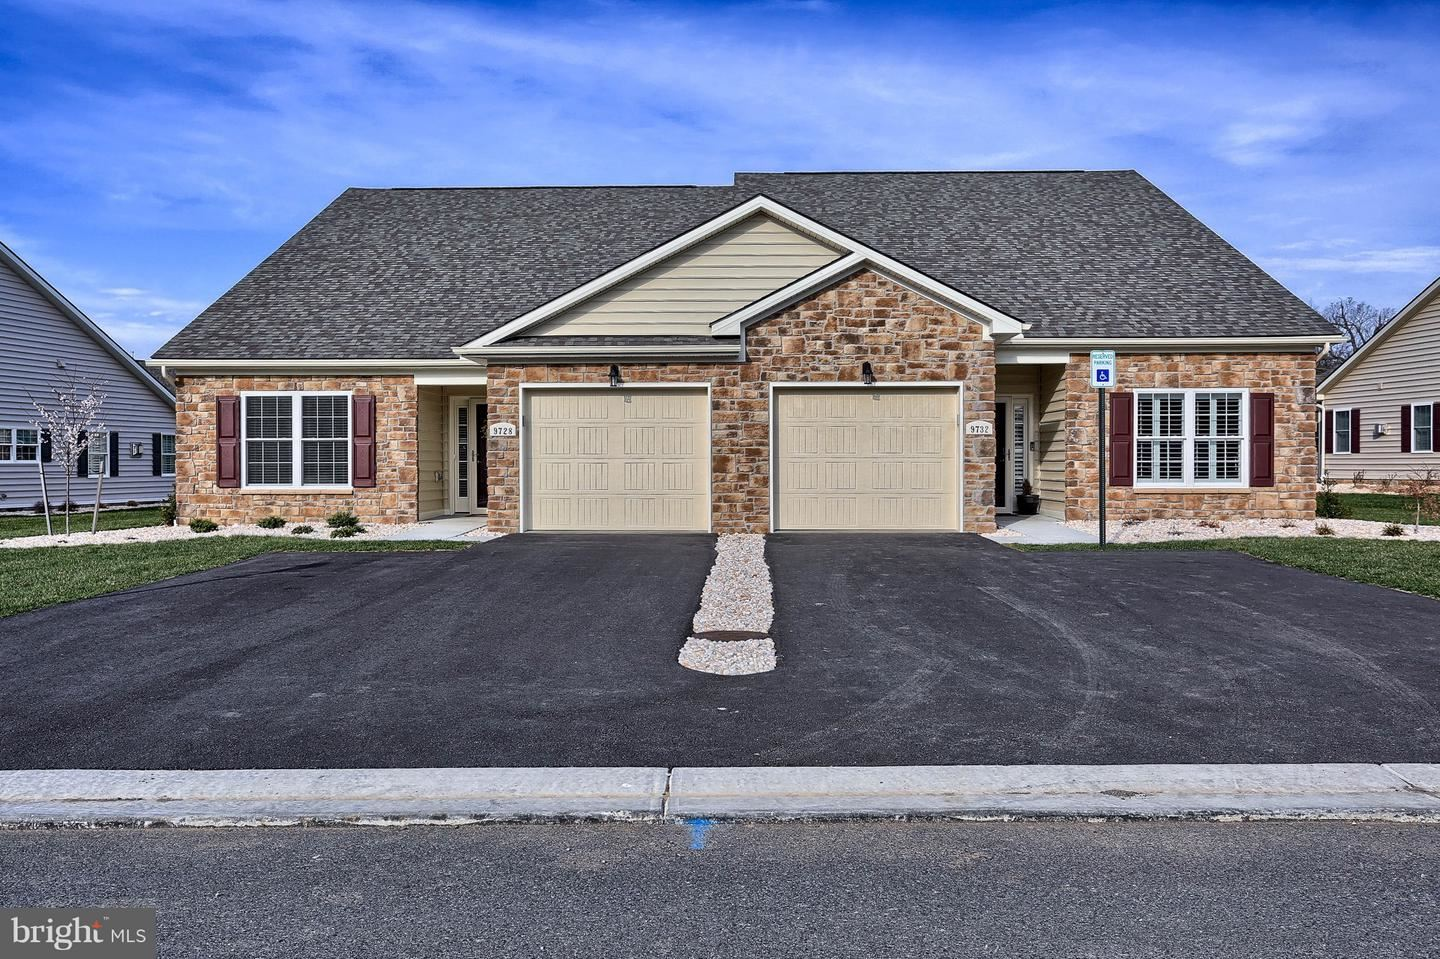 9732 COBBLE STONE CT, Hagerstown, MD 21740 - #: MDWA100094